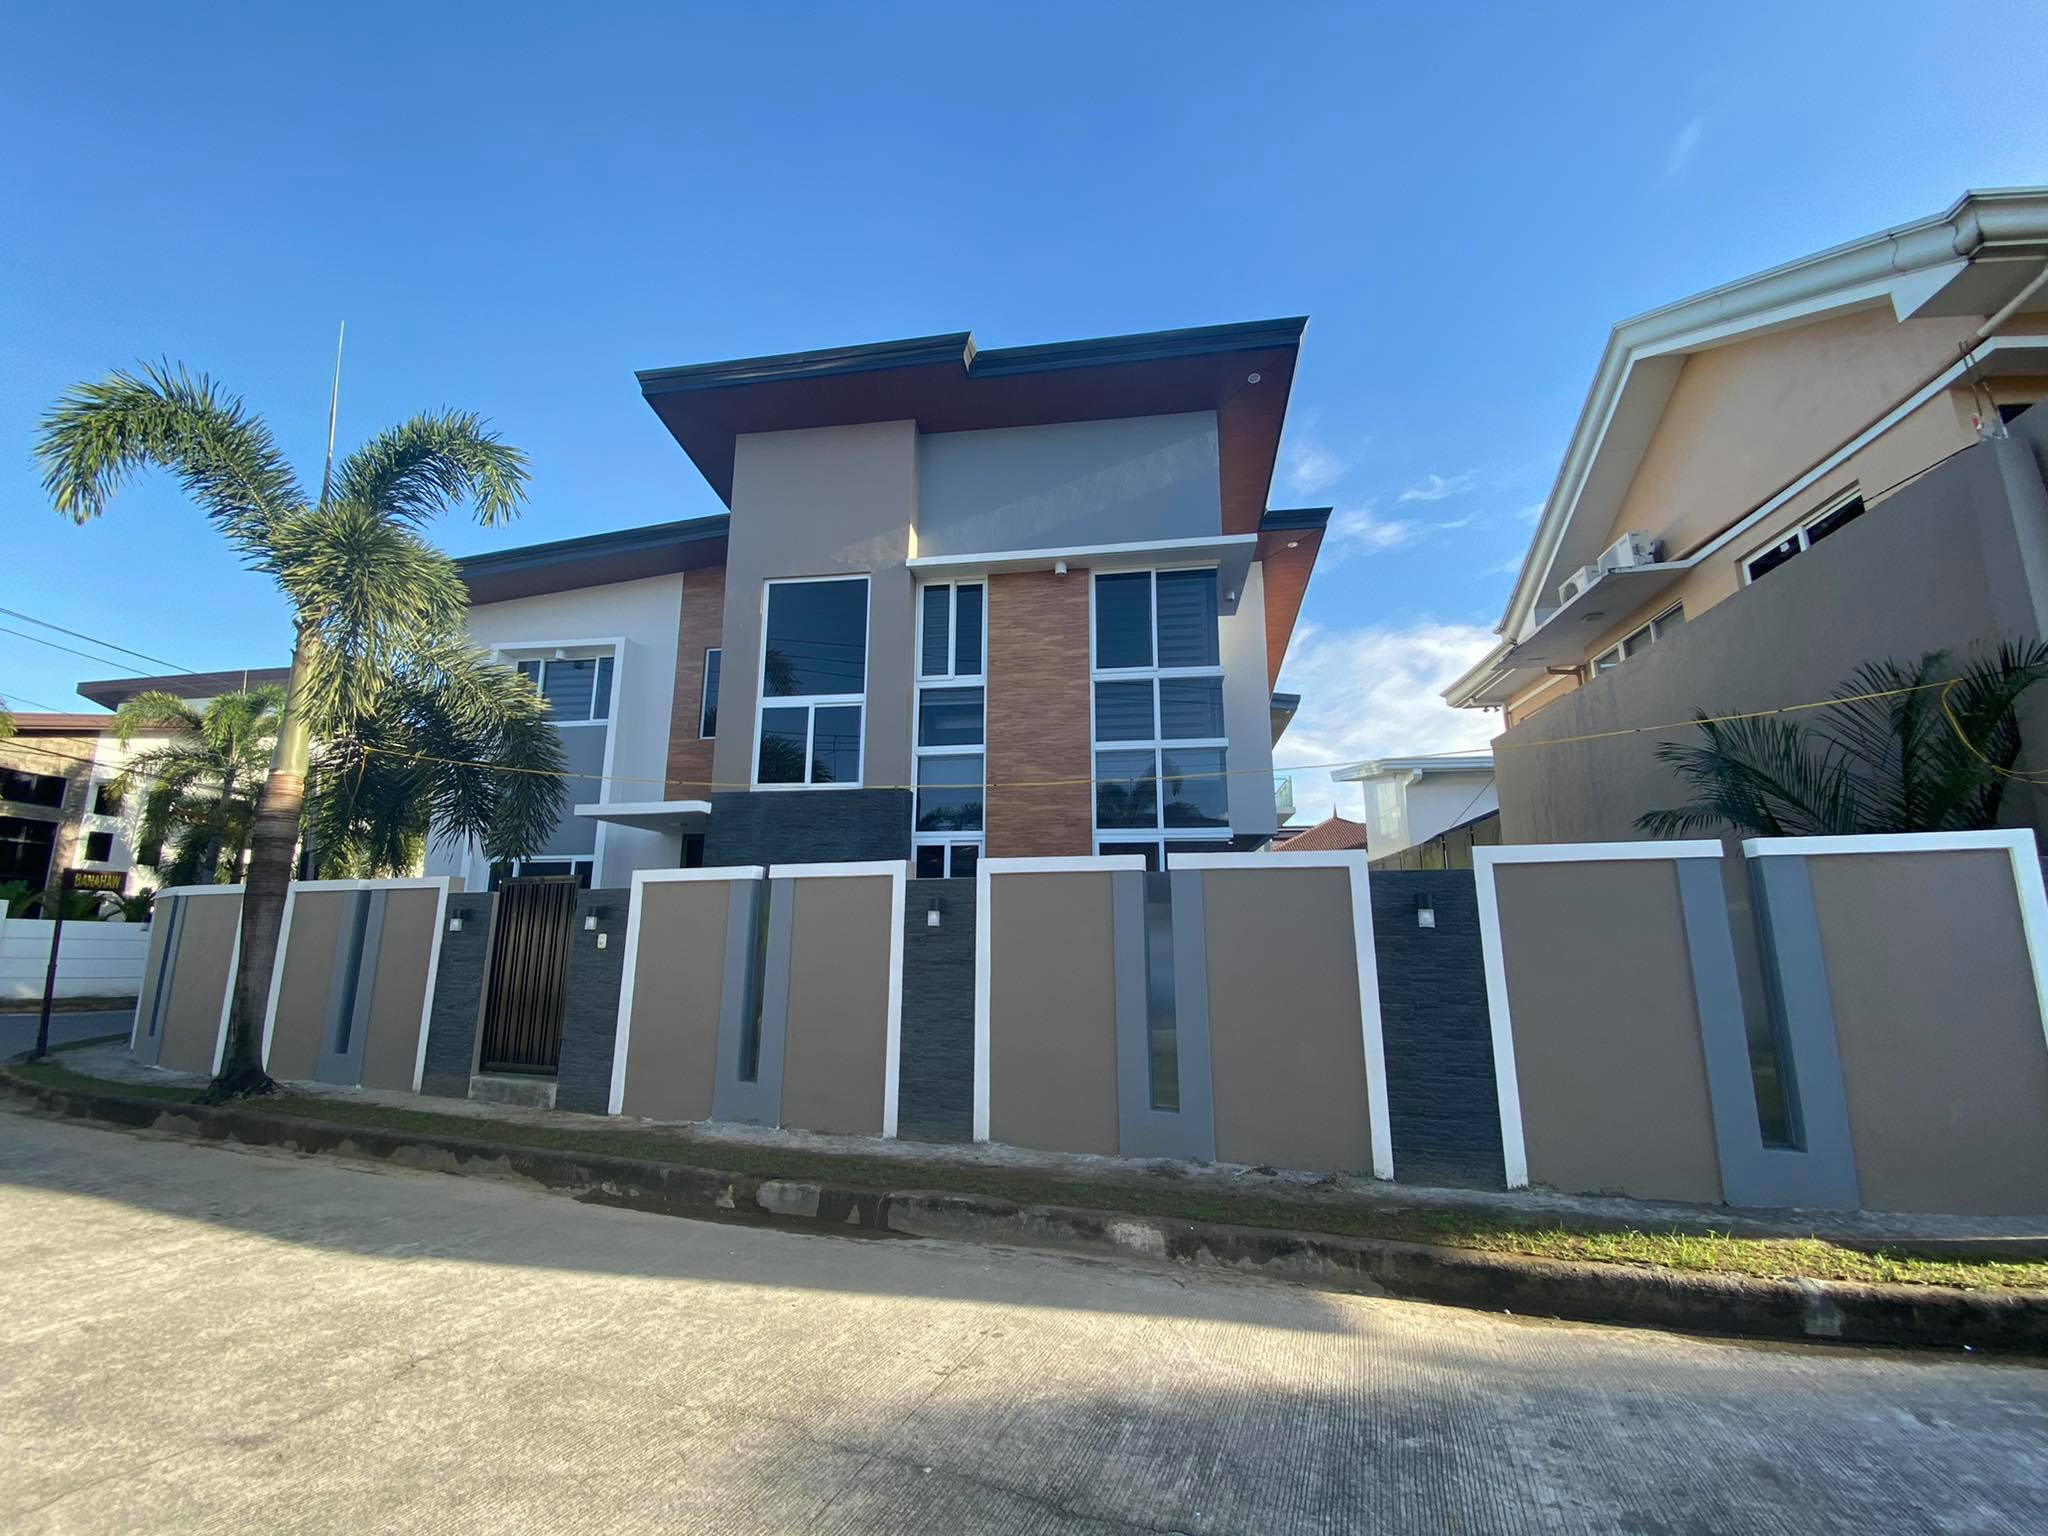 Angeles City brand new house and lot with pool for sale